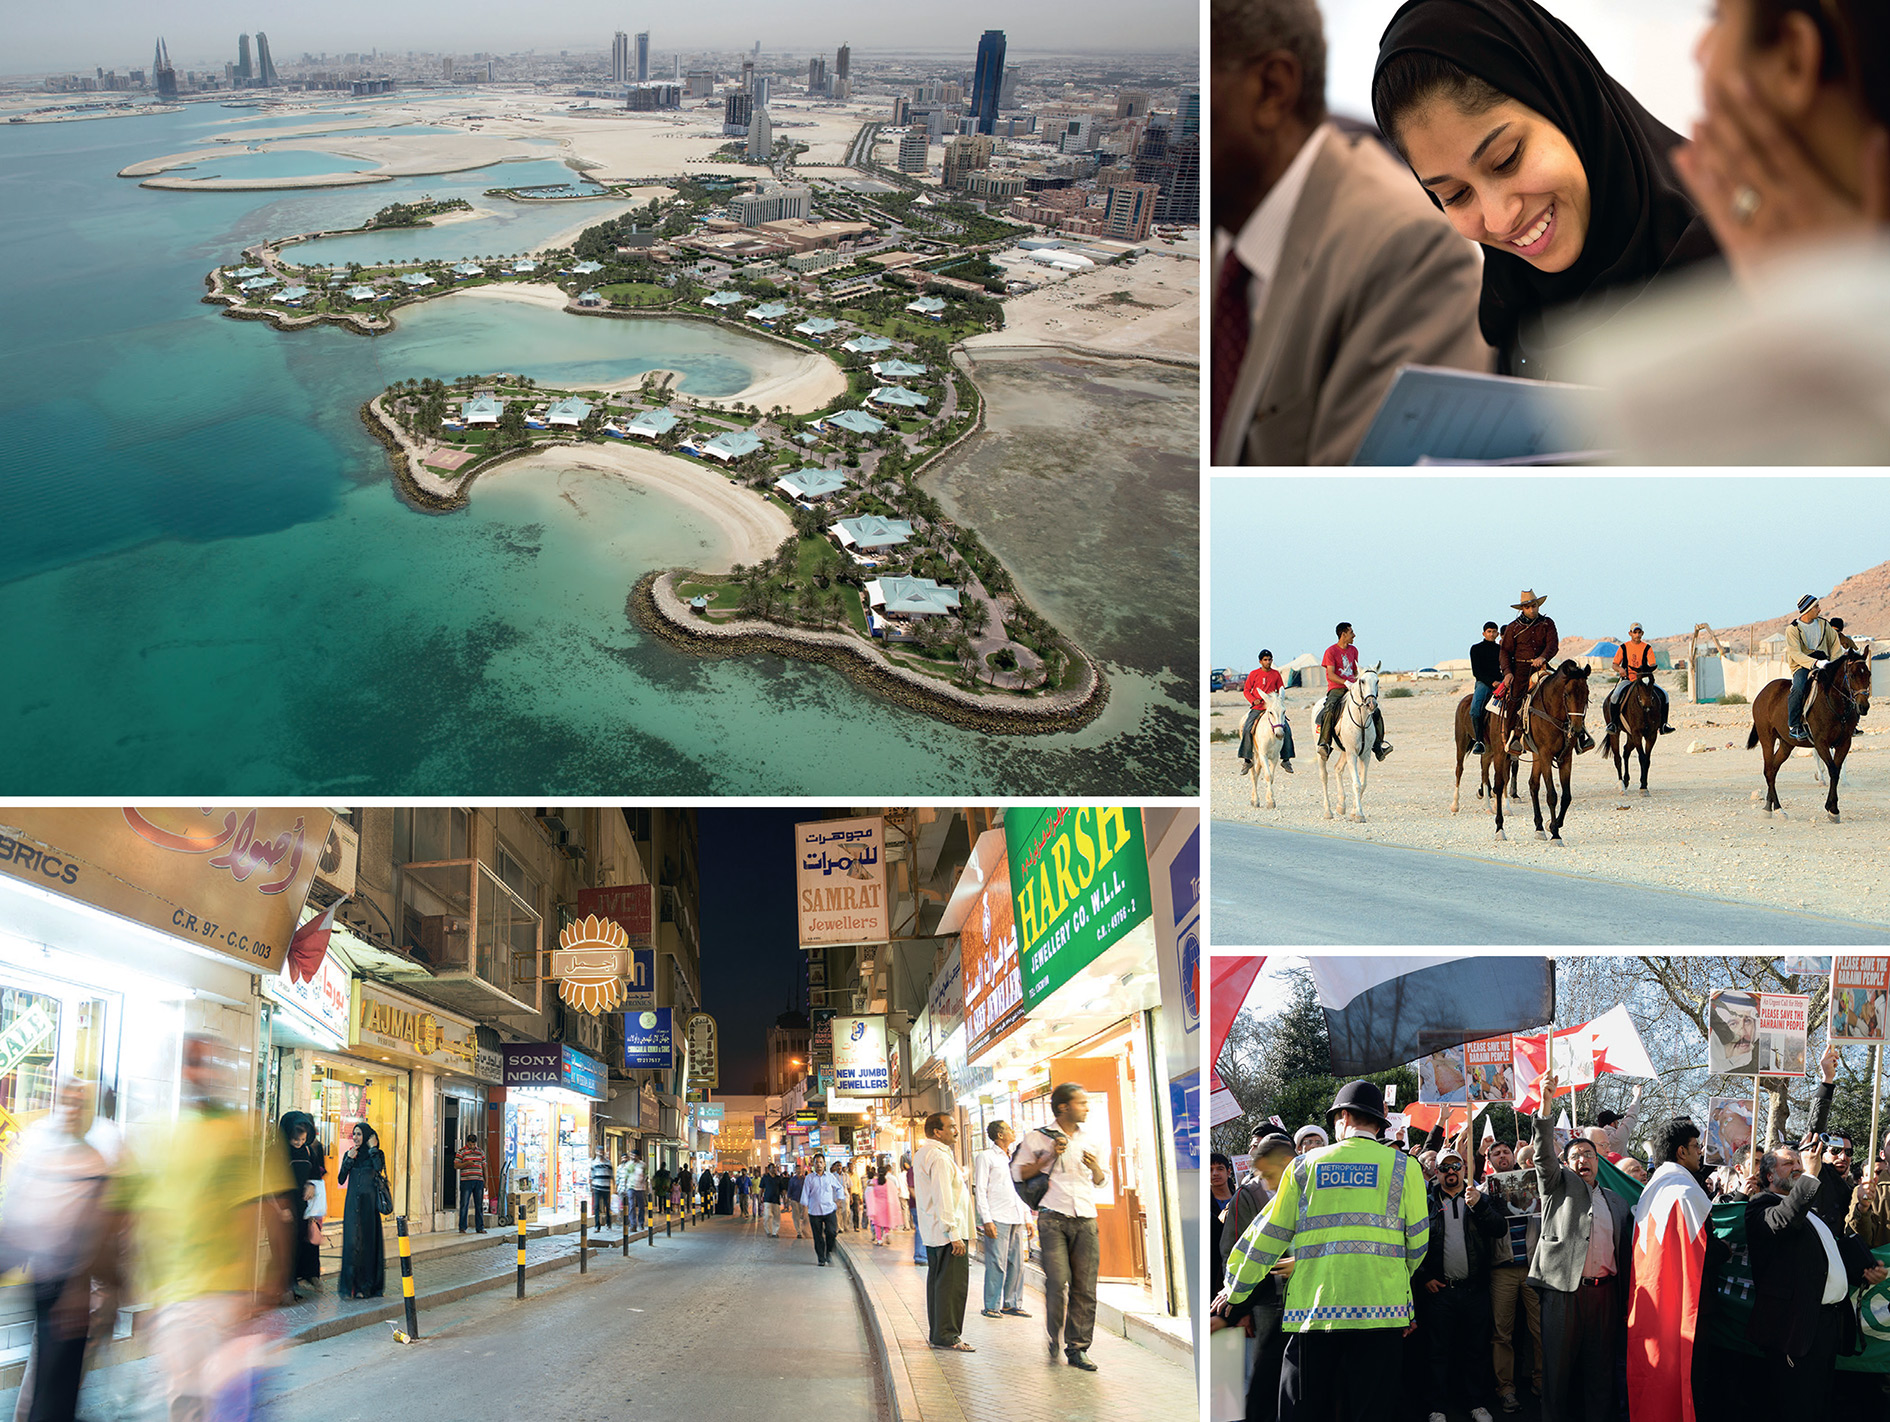 Clockwise from top left: Aerial photograph of the luxury Ritz Carlton resort near Manama, with the skyline of the capital in the distance; a Bahraini law student – there are more opportunities for women than in neighbouring Saudi Arabia; locals horse riding in the desert; a demonstration by Bahrainis in London demanding democratic rights in their country; the modern souk in Manama.